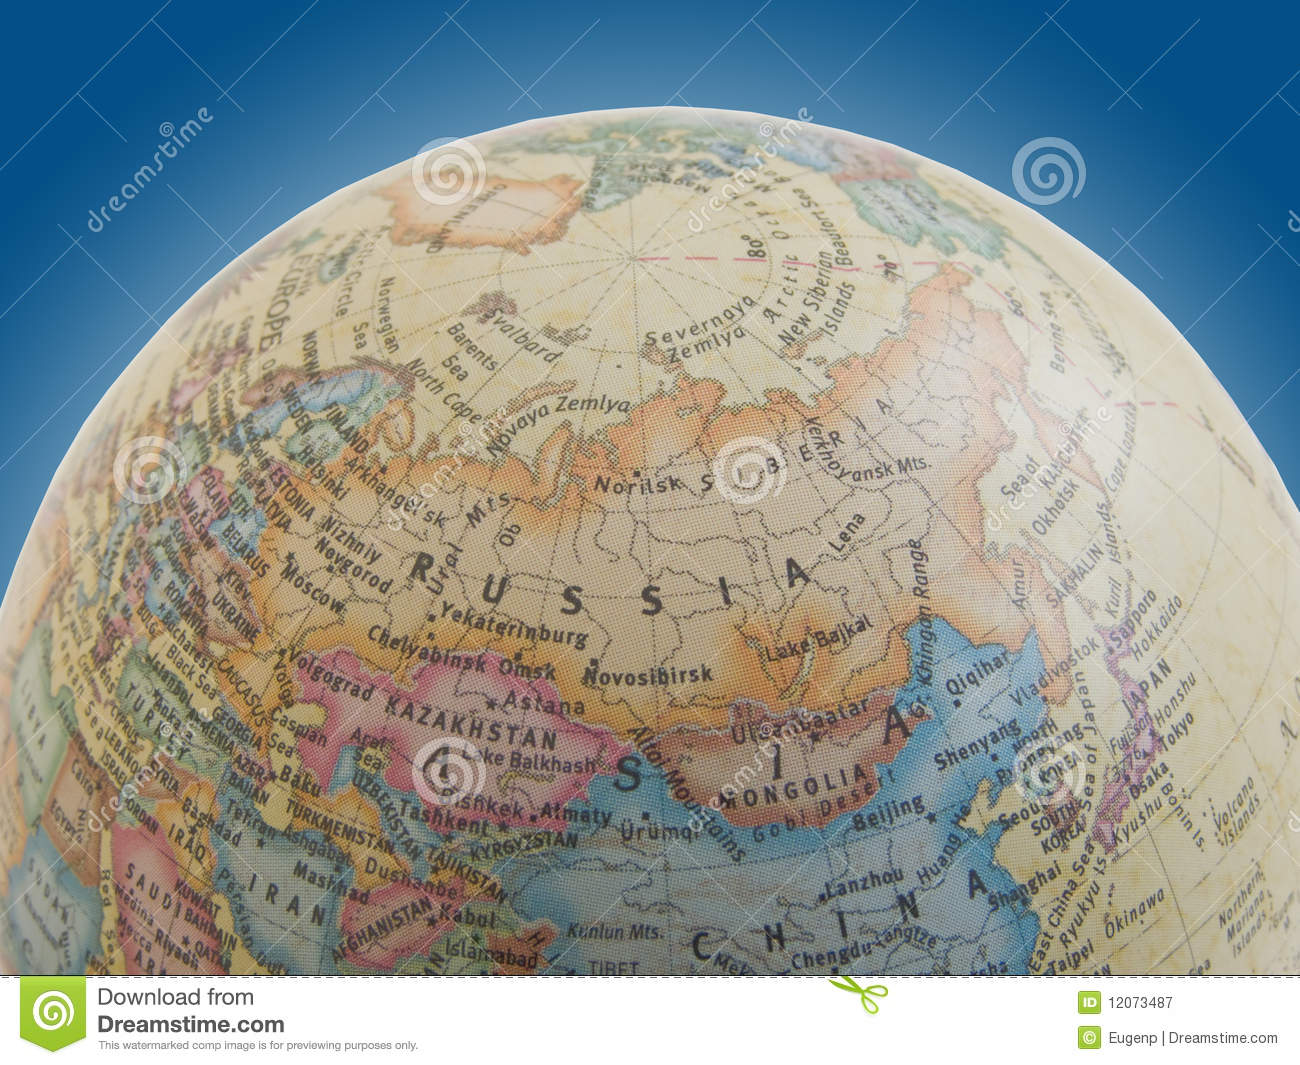 Russia on the globe stock image image of planet asia 12073487 russia on the globe gumiabroncs Images